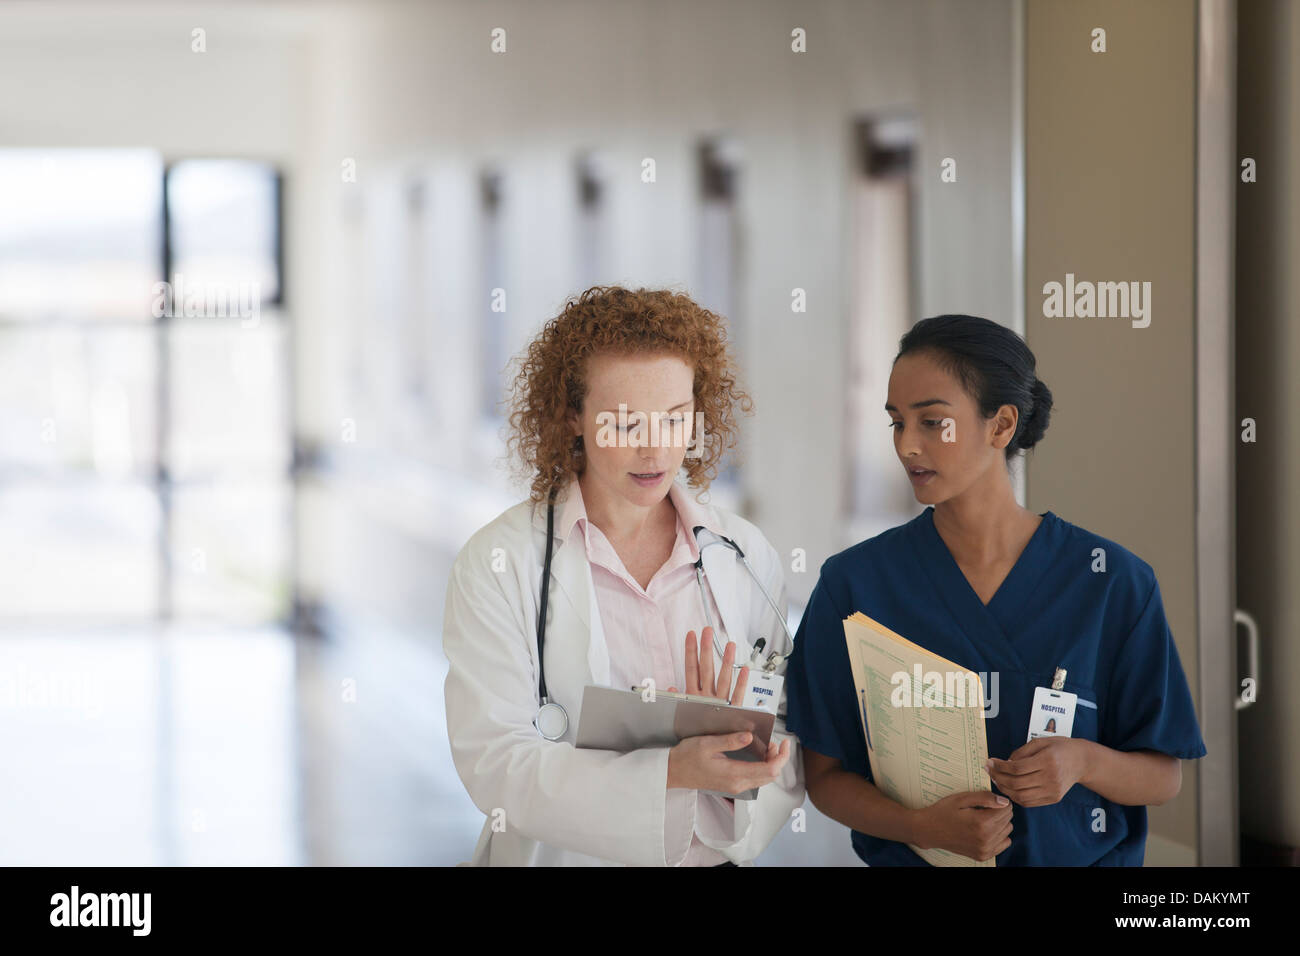 Doctor and nurse talking in hospital hallway - Stock Image